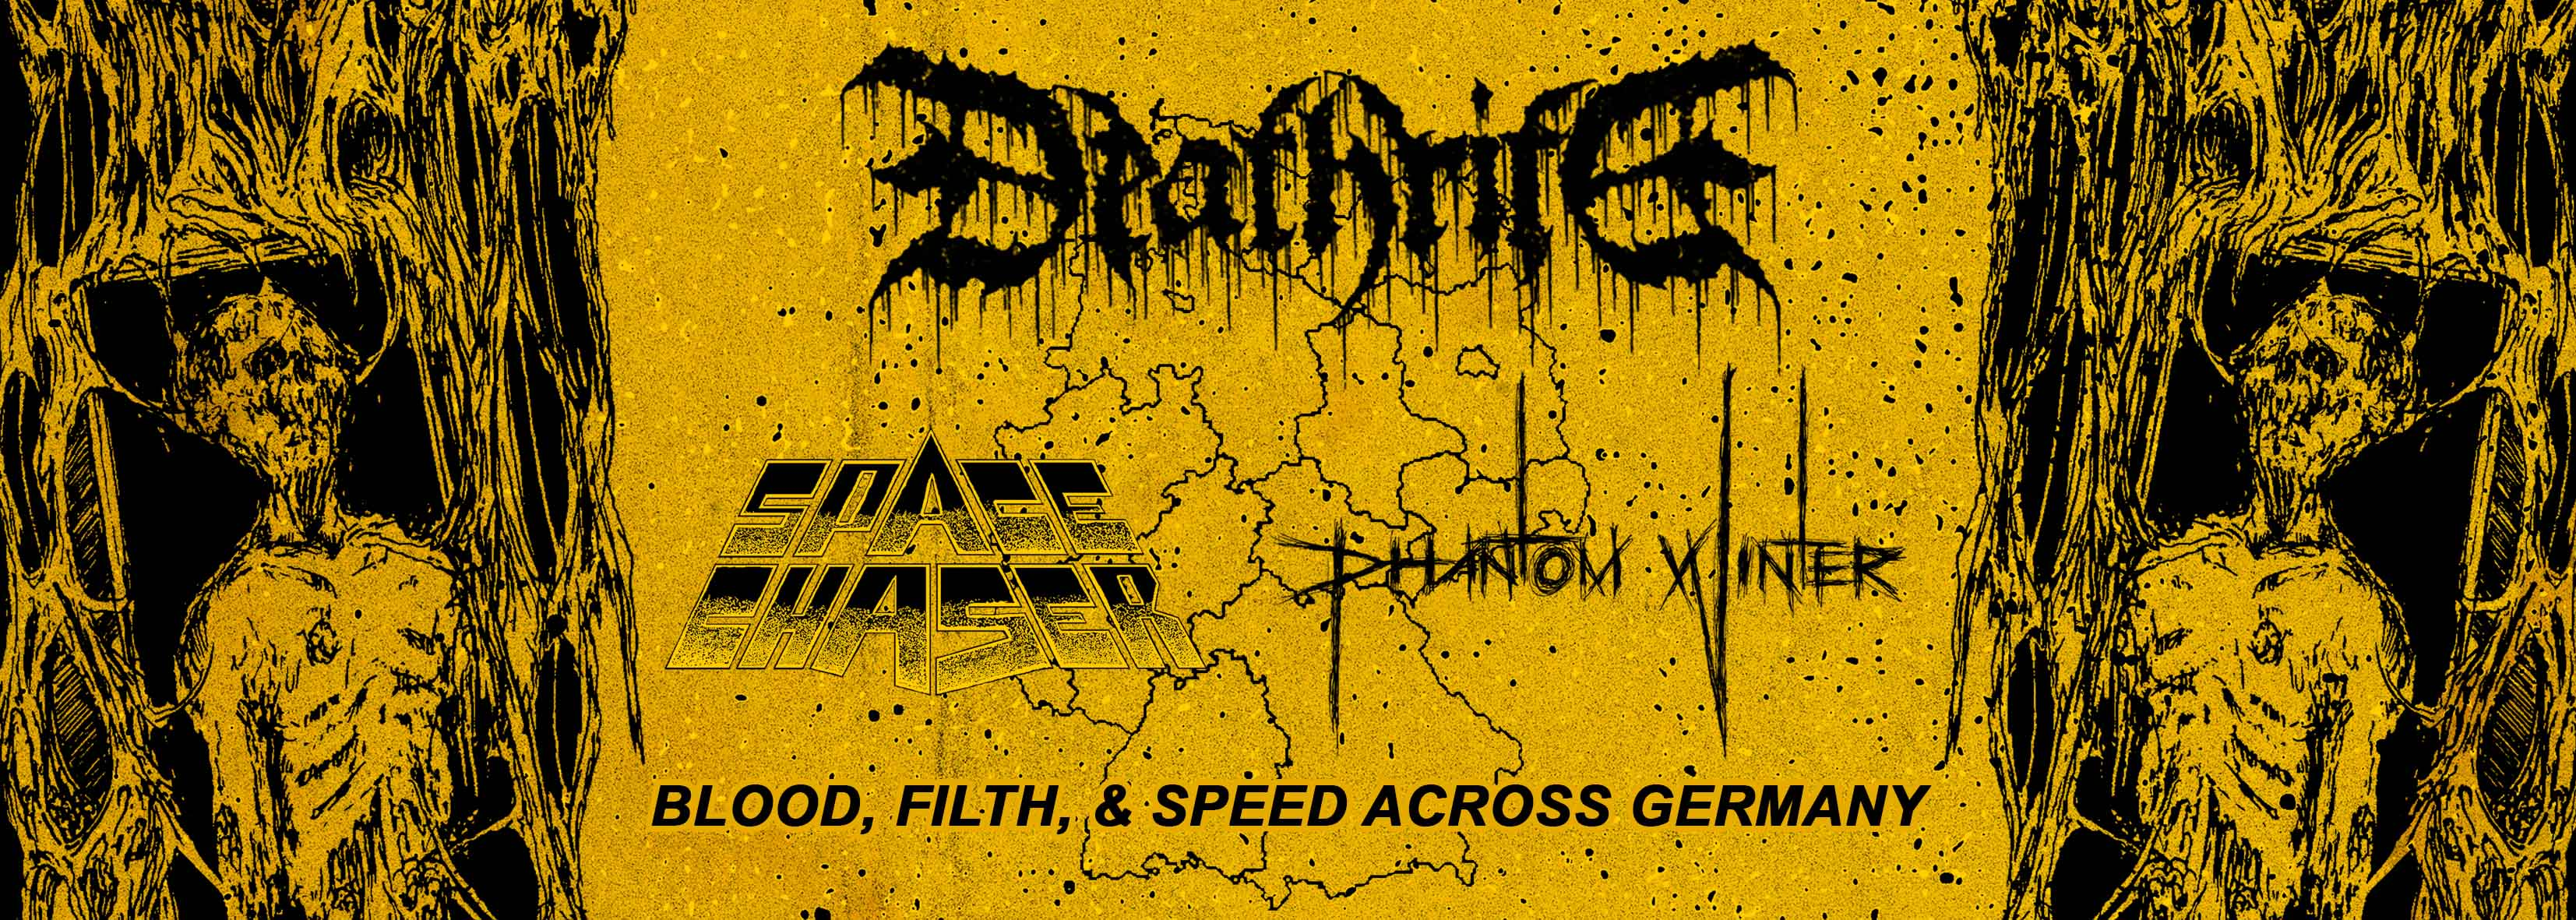 DEATHRITE - BLOOD, FILTH & SPEED ACROSS GERMANY